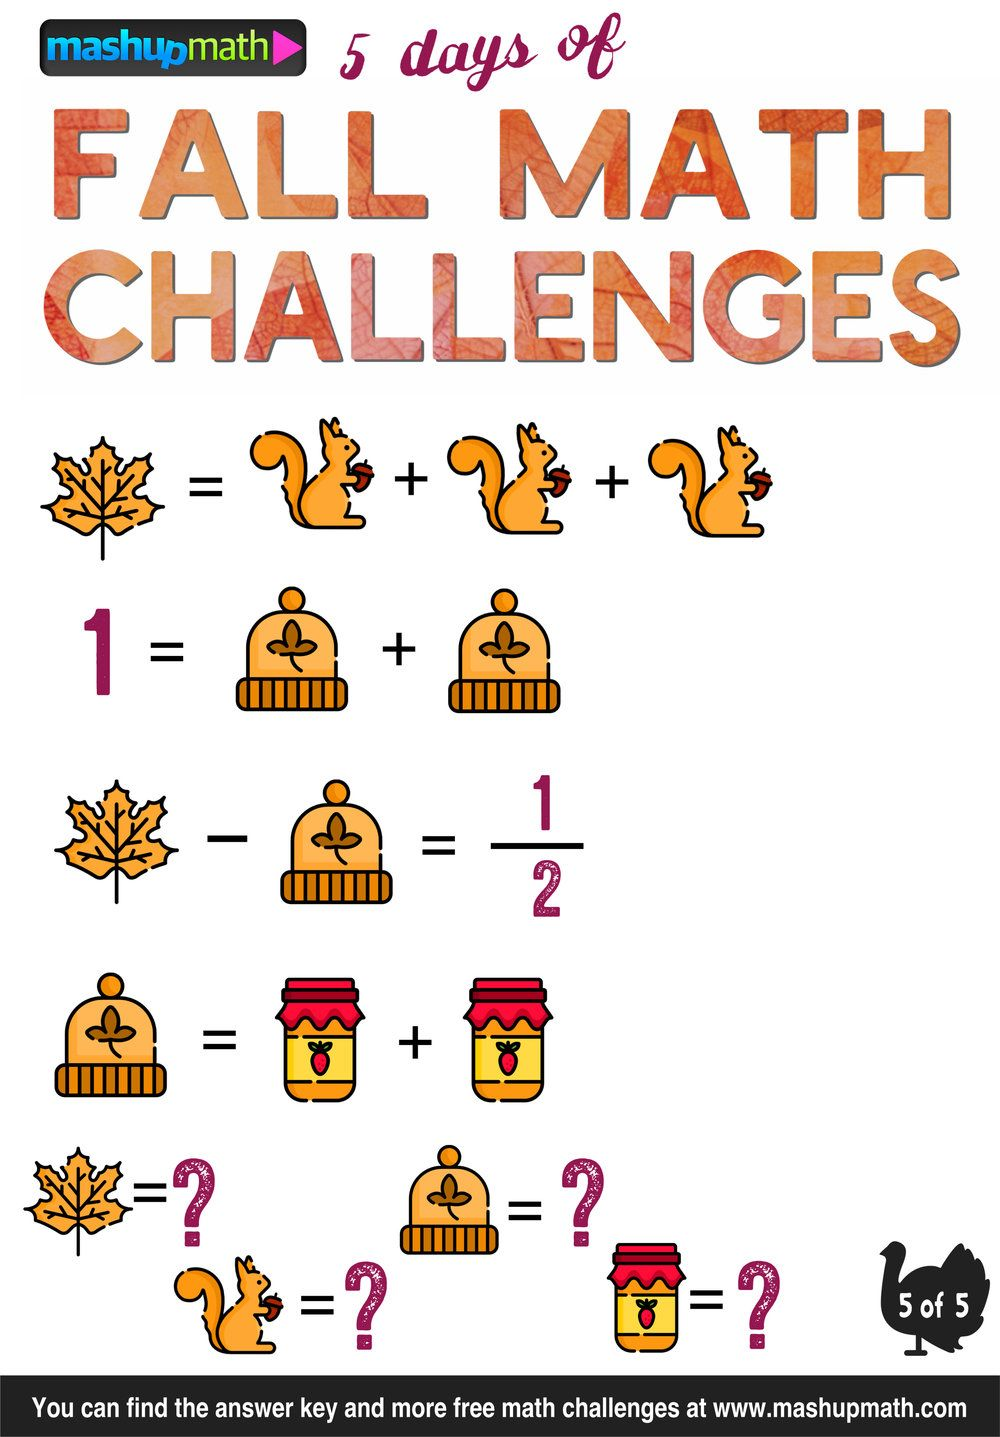 Are Your Kids Ready For 5 Days Of Fall Math Challenges Mashup Math Math Challenge Fall Math Math [ 1437 x 1000 Pixel ]